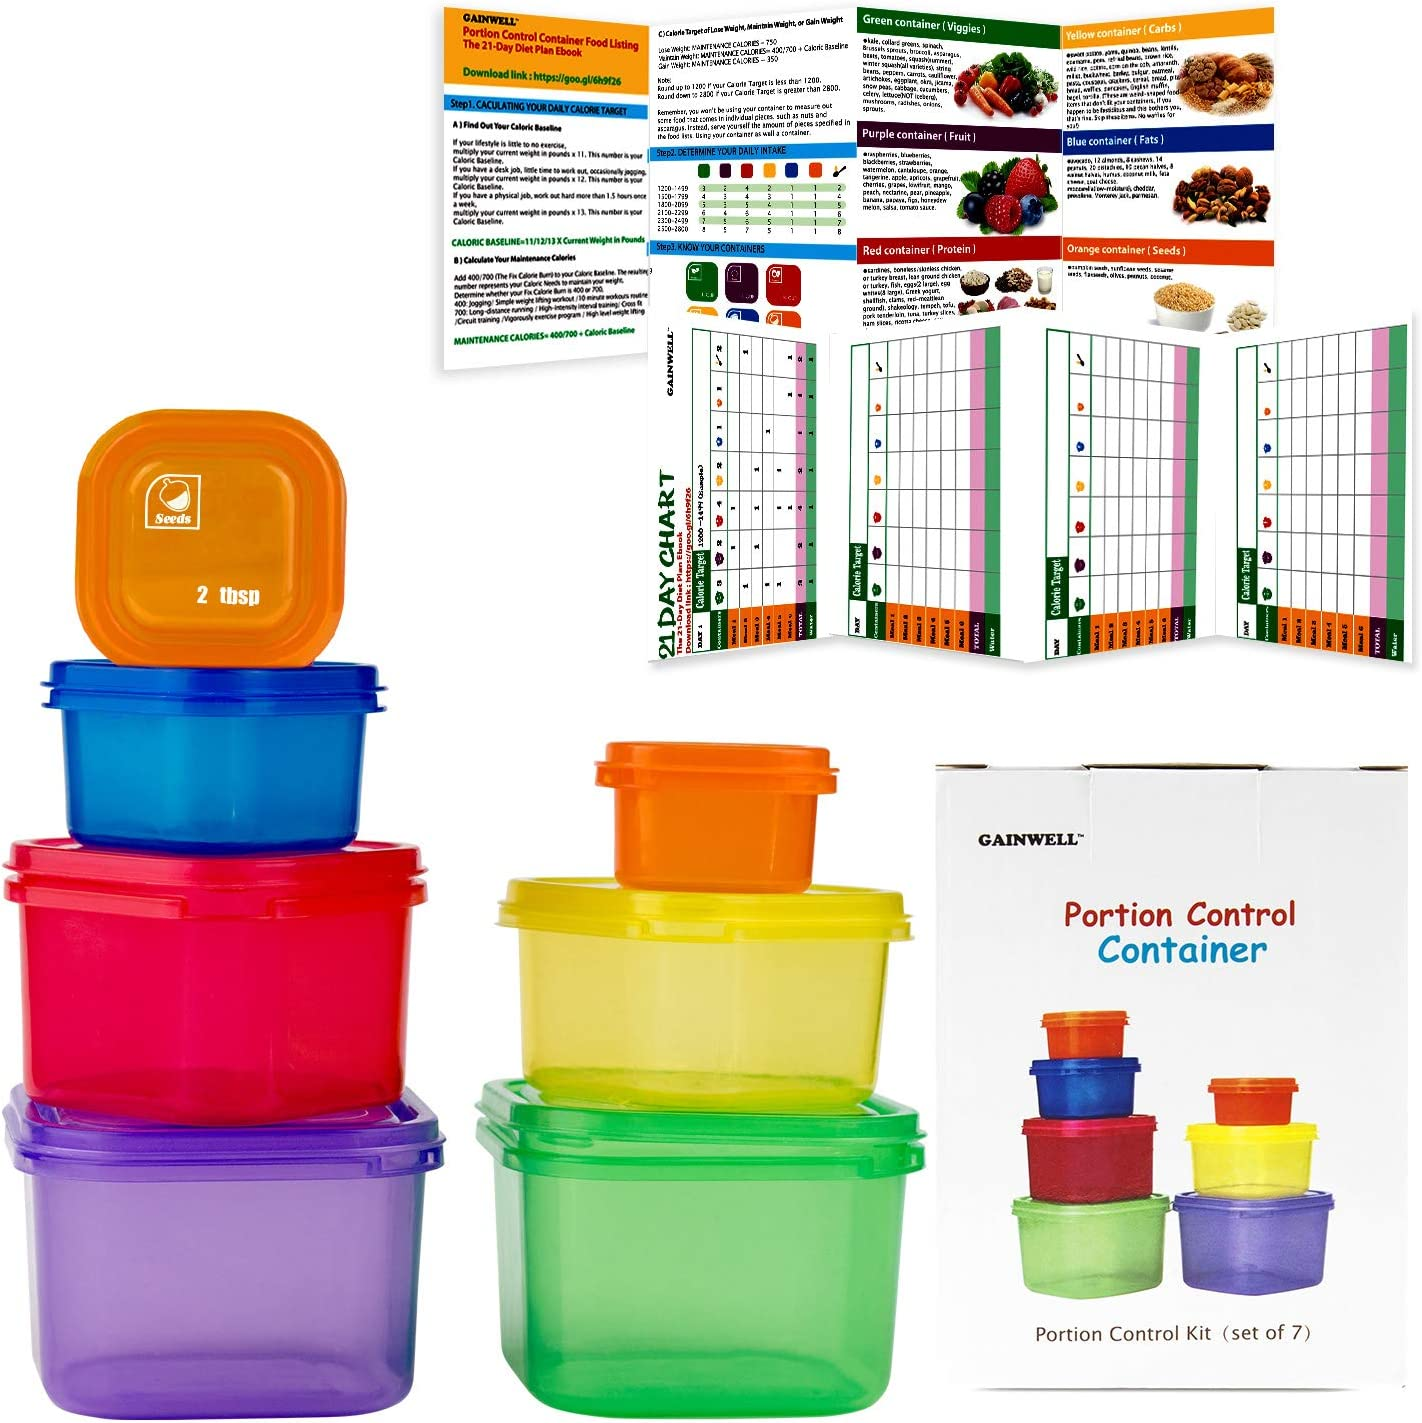 GAINWELL Day Meal Portion Containers